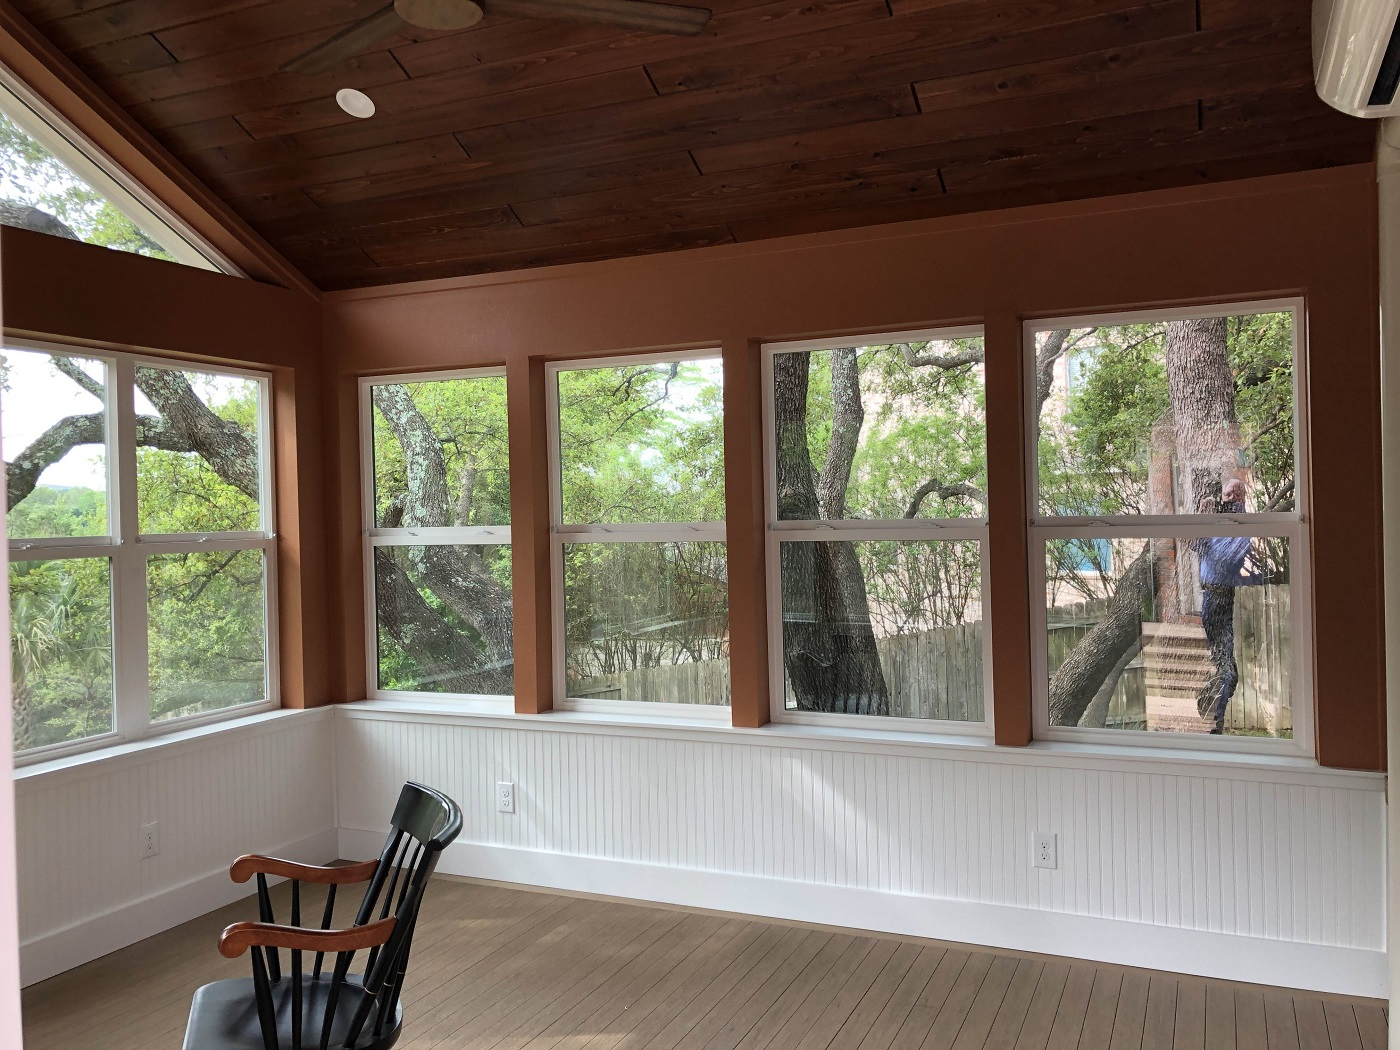 The-new-sunroom-is-located-just-off-the-home's-study